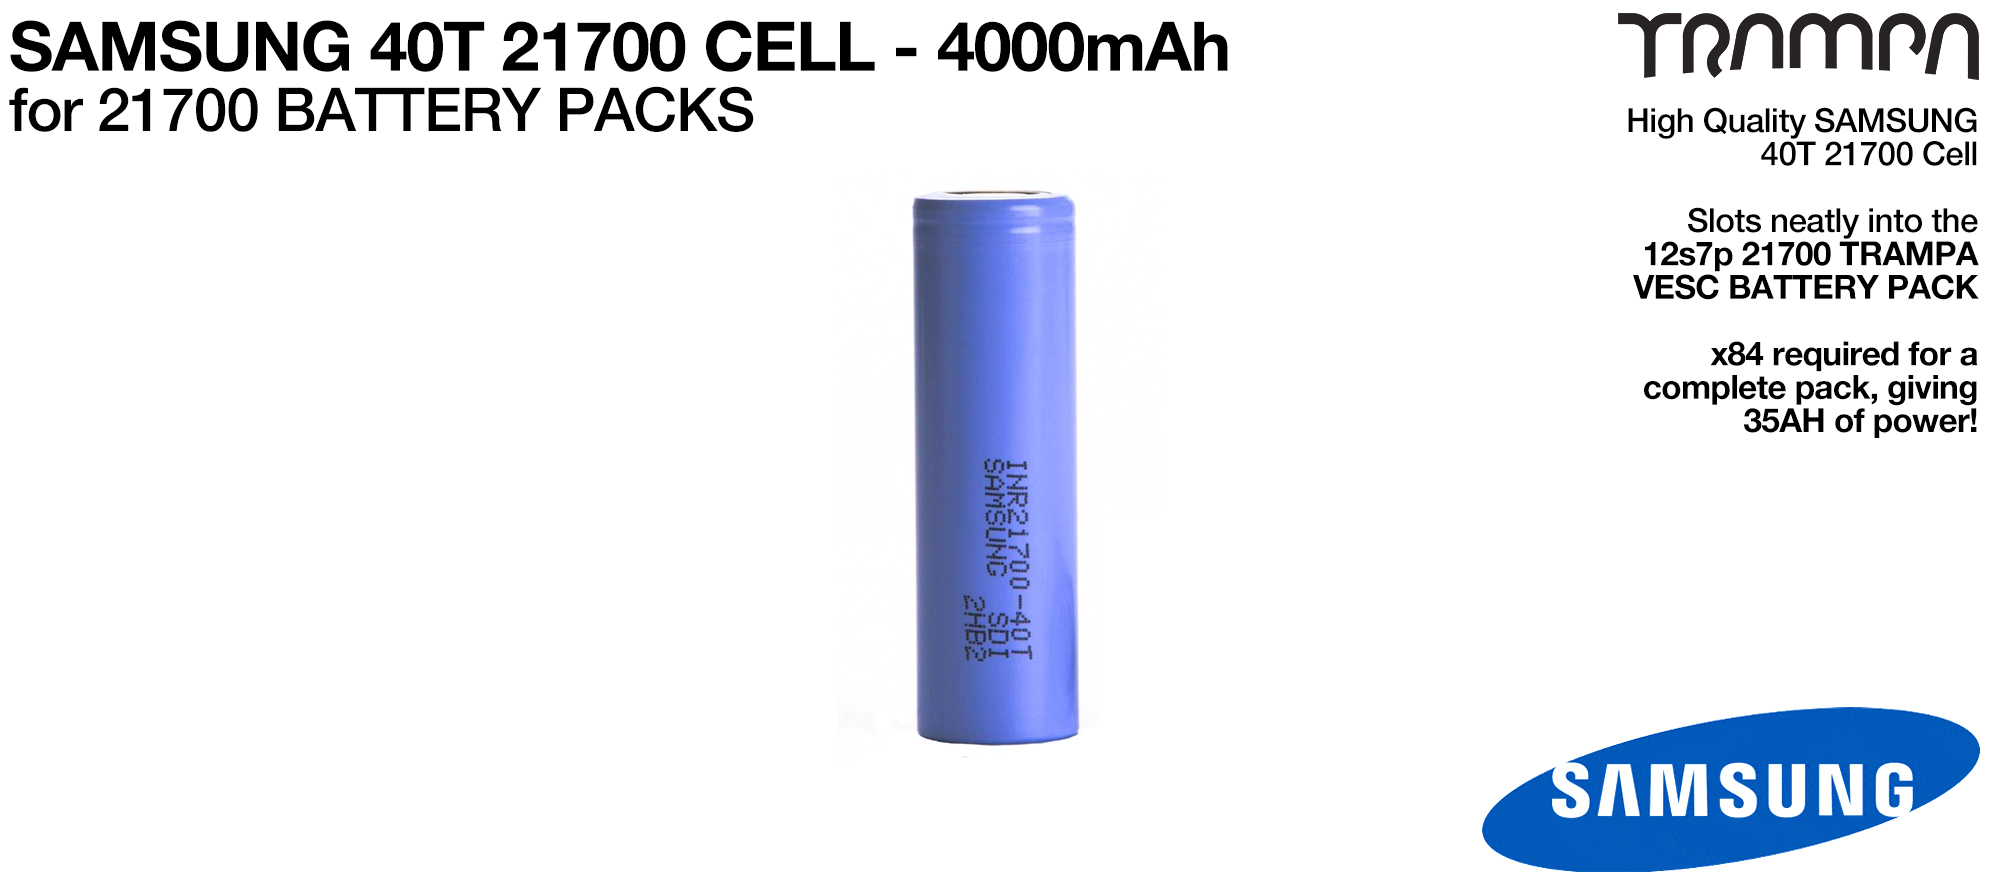 SAMSUNG 40T 21700 Batteries 4000mAh - UK CUSTOMERS ONLY